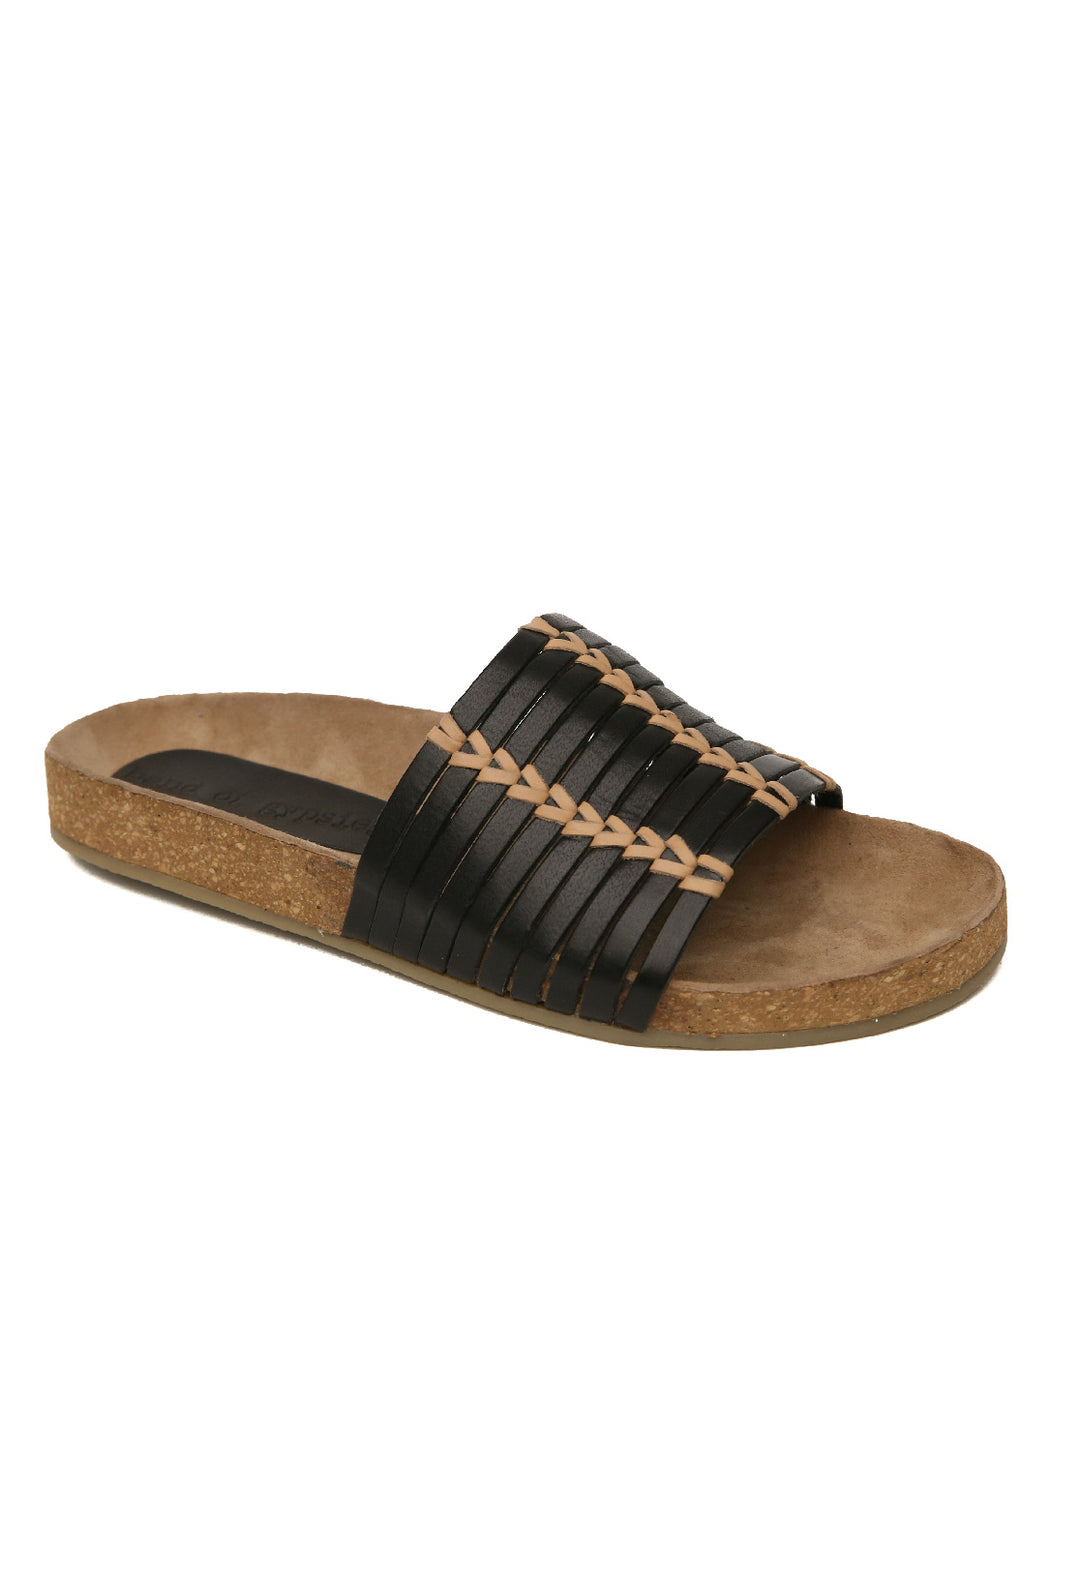 Aztec Black Natural Leather Slide Sandal Master